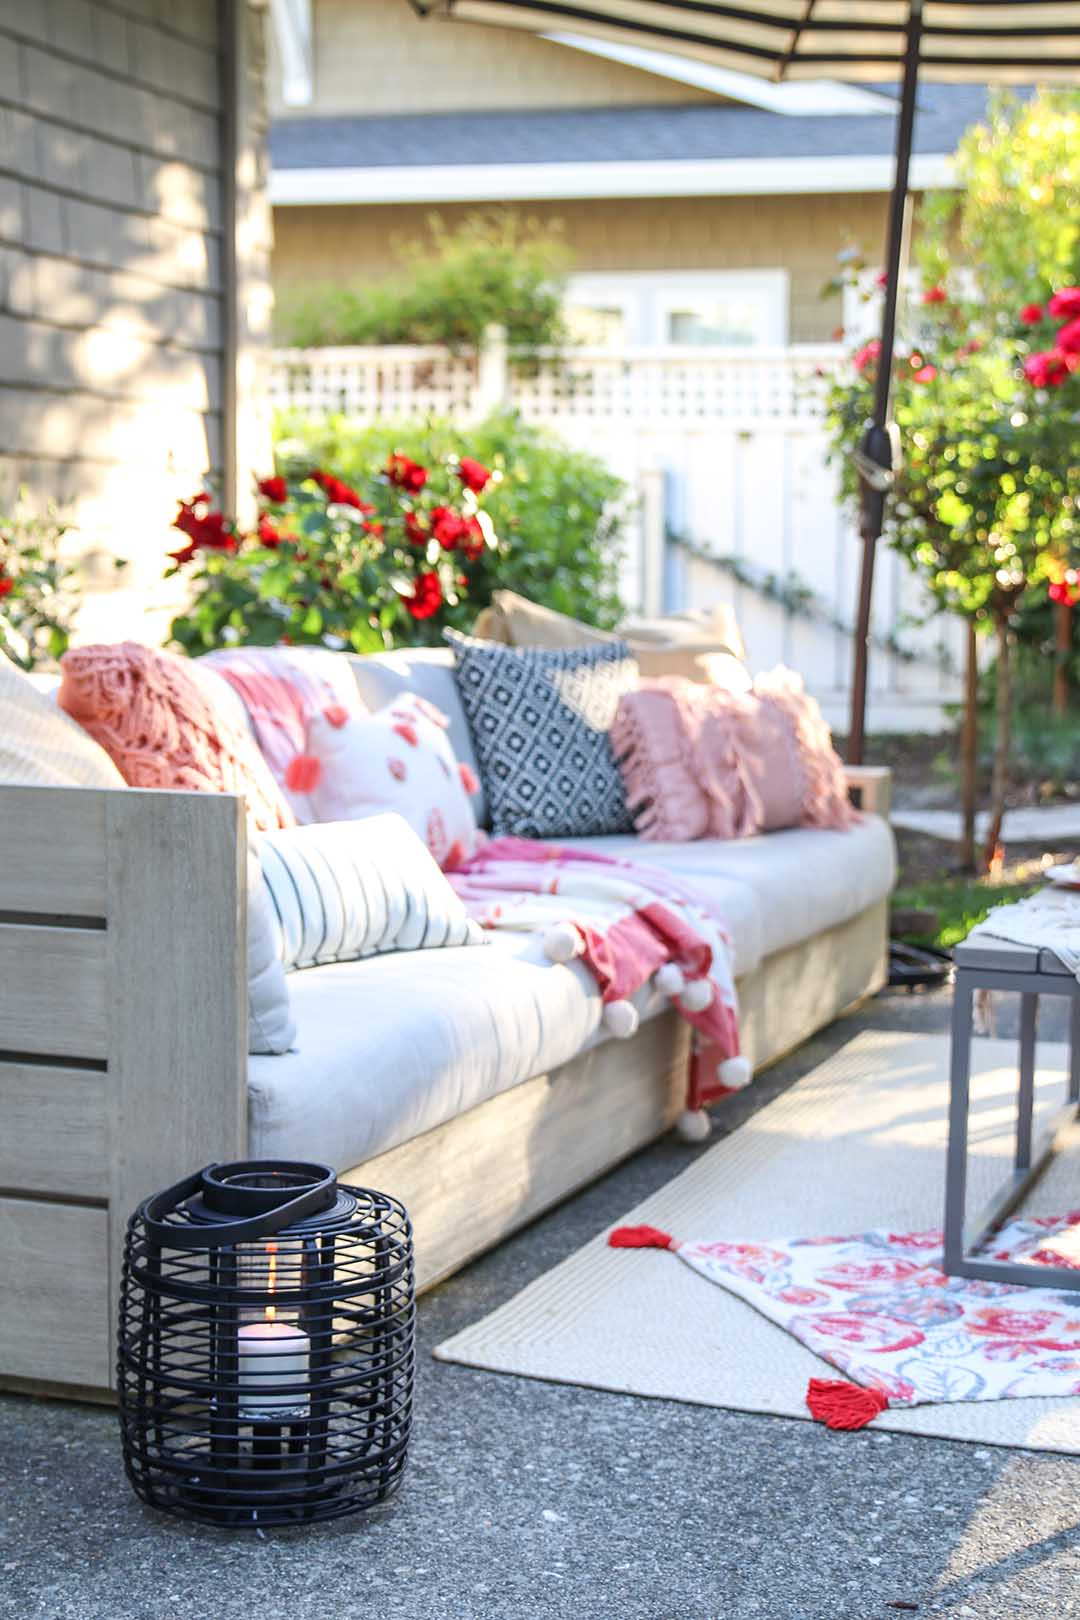 Patio Decorating Ideas 7 Simple Summer Updates Modern Glam